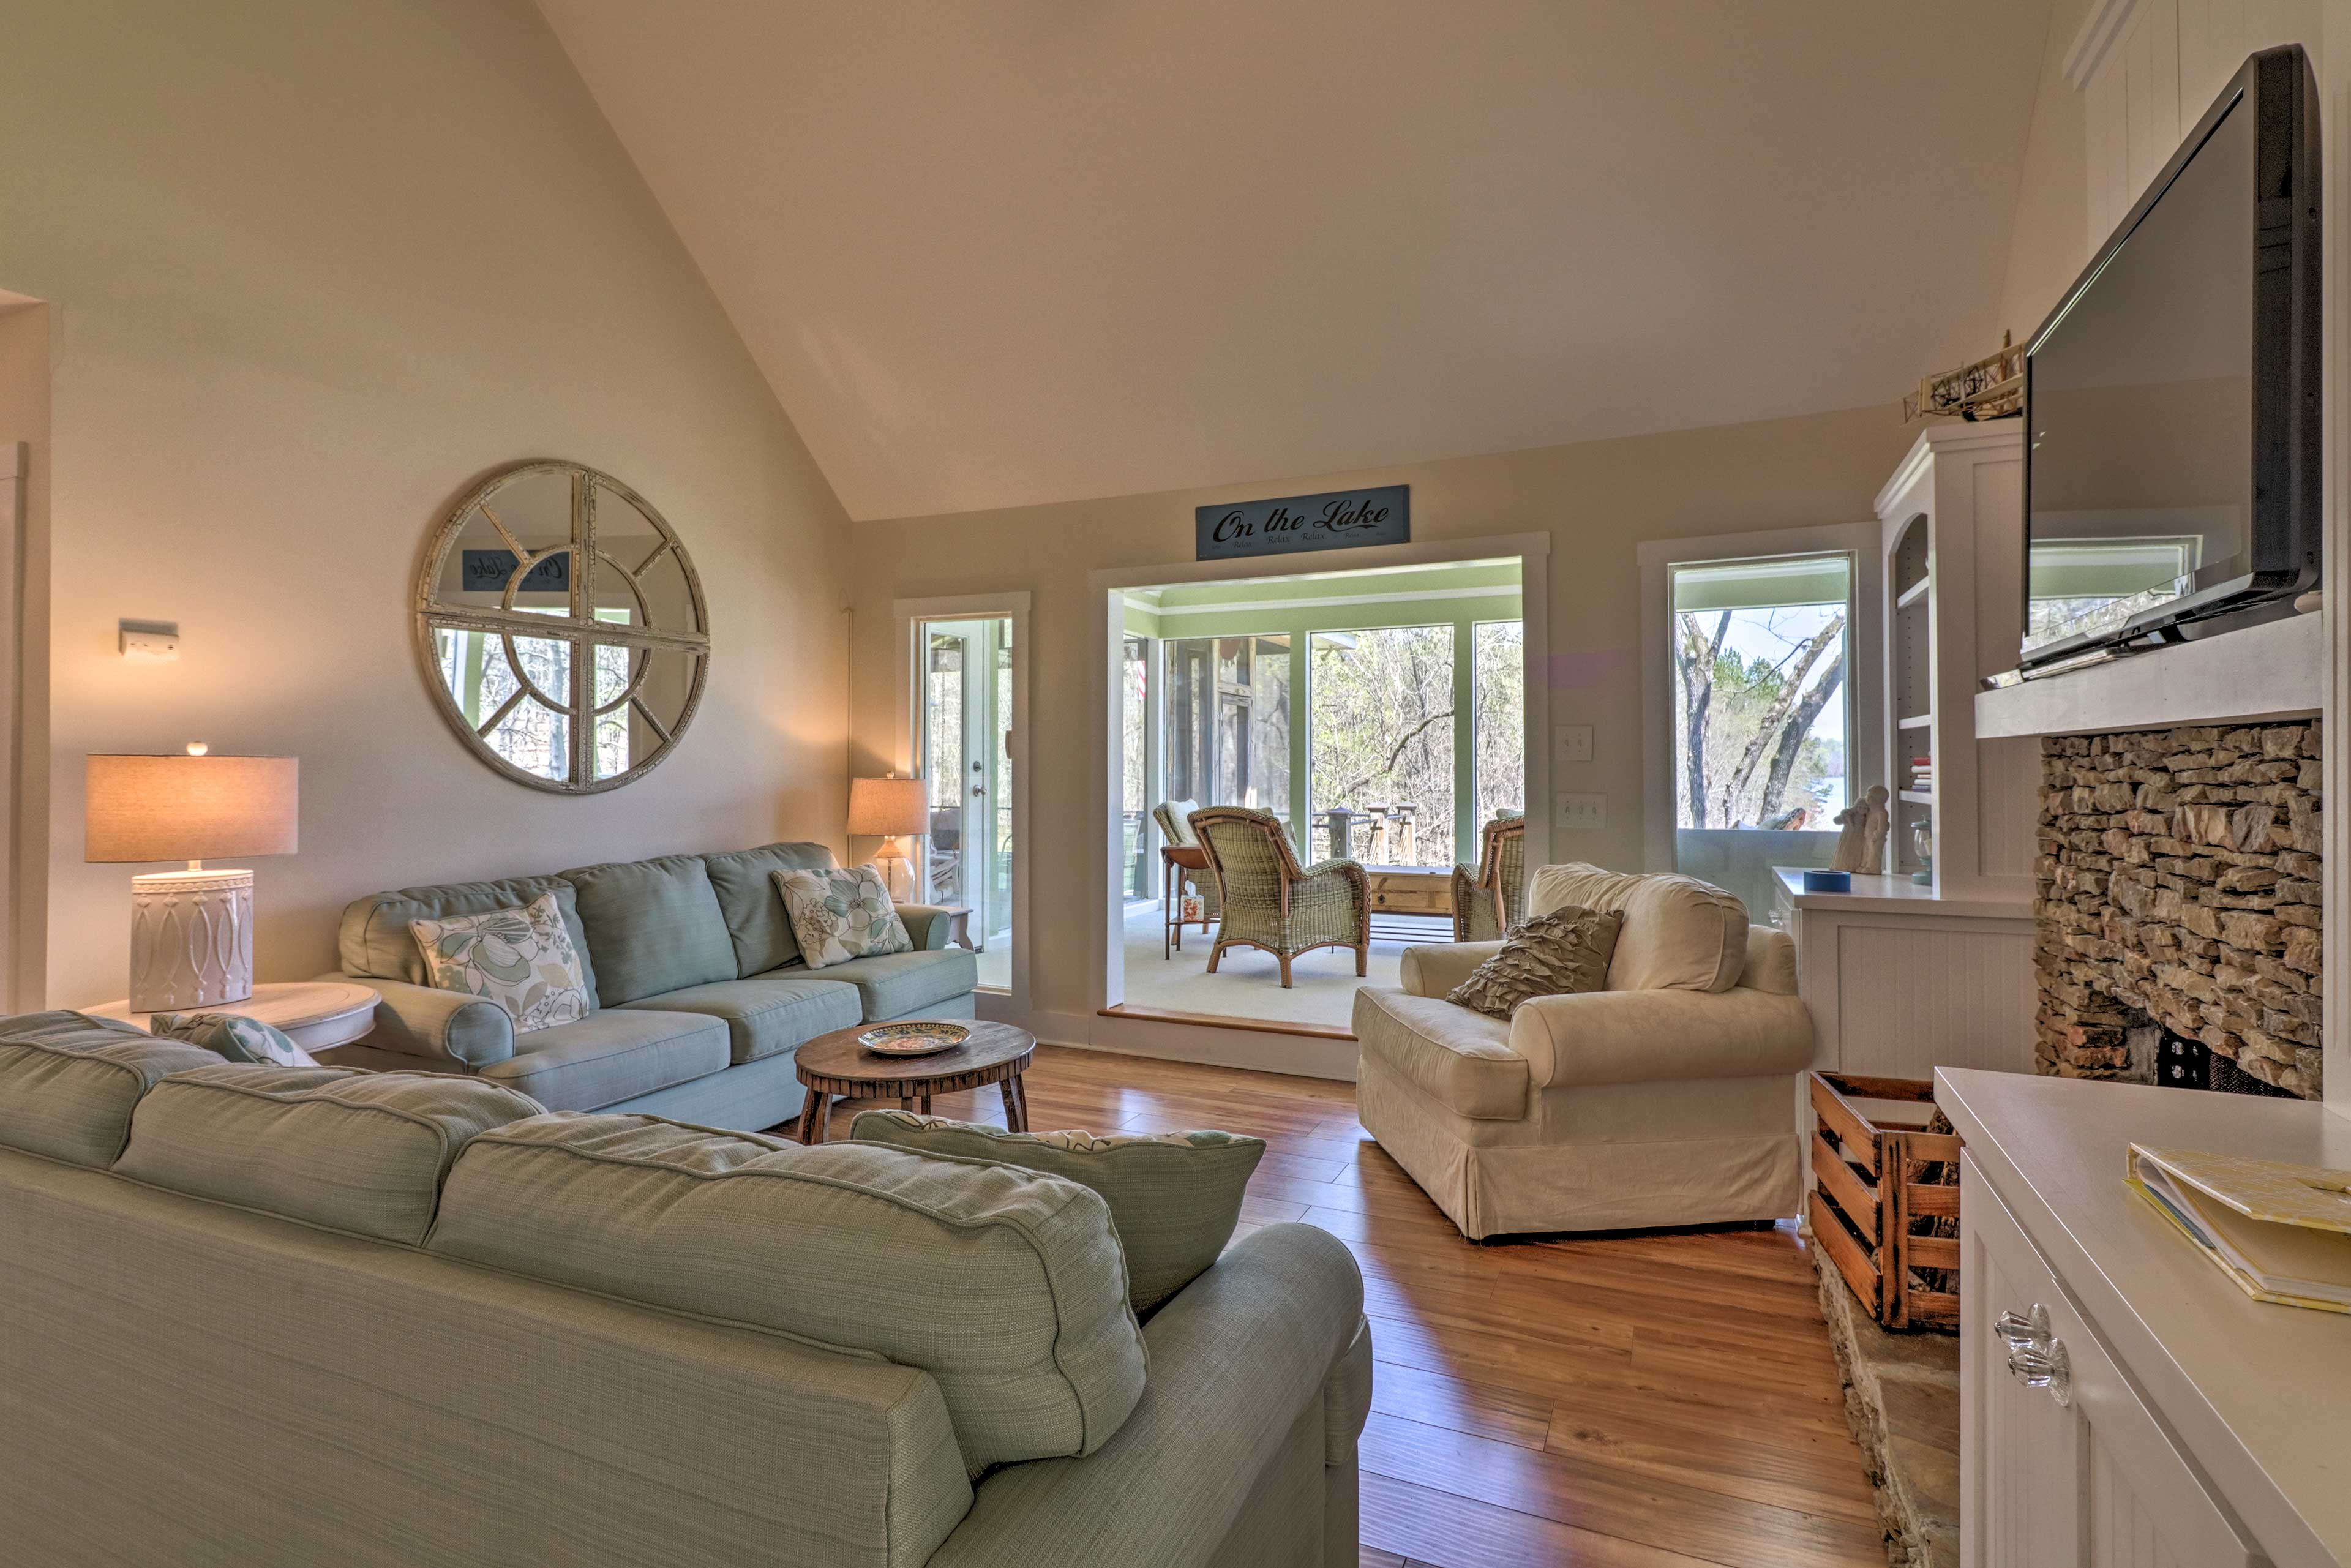 Natural light pours in through large picture windows.